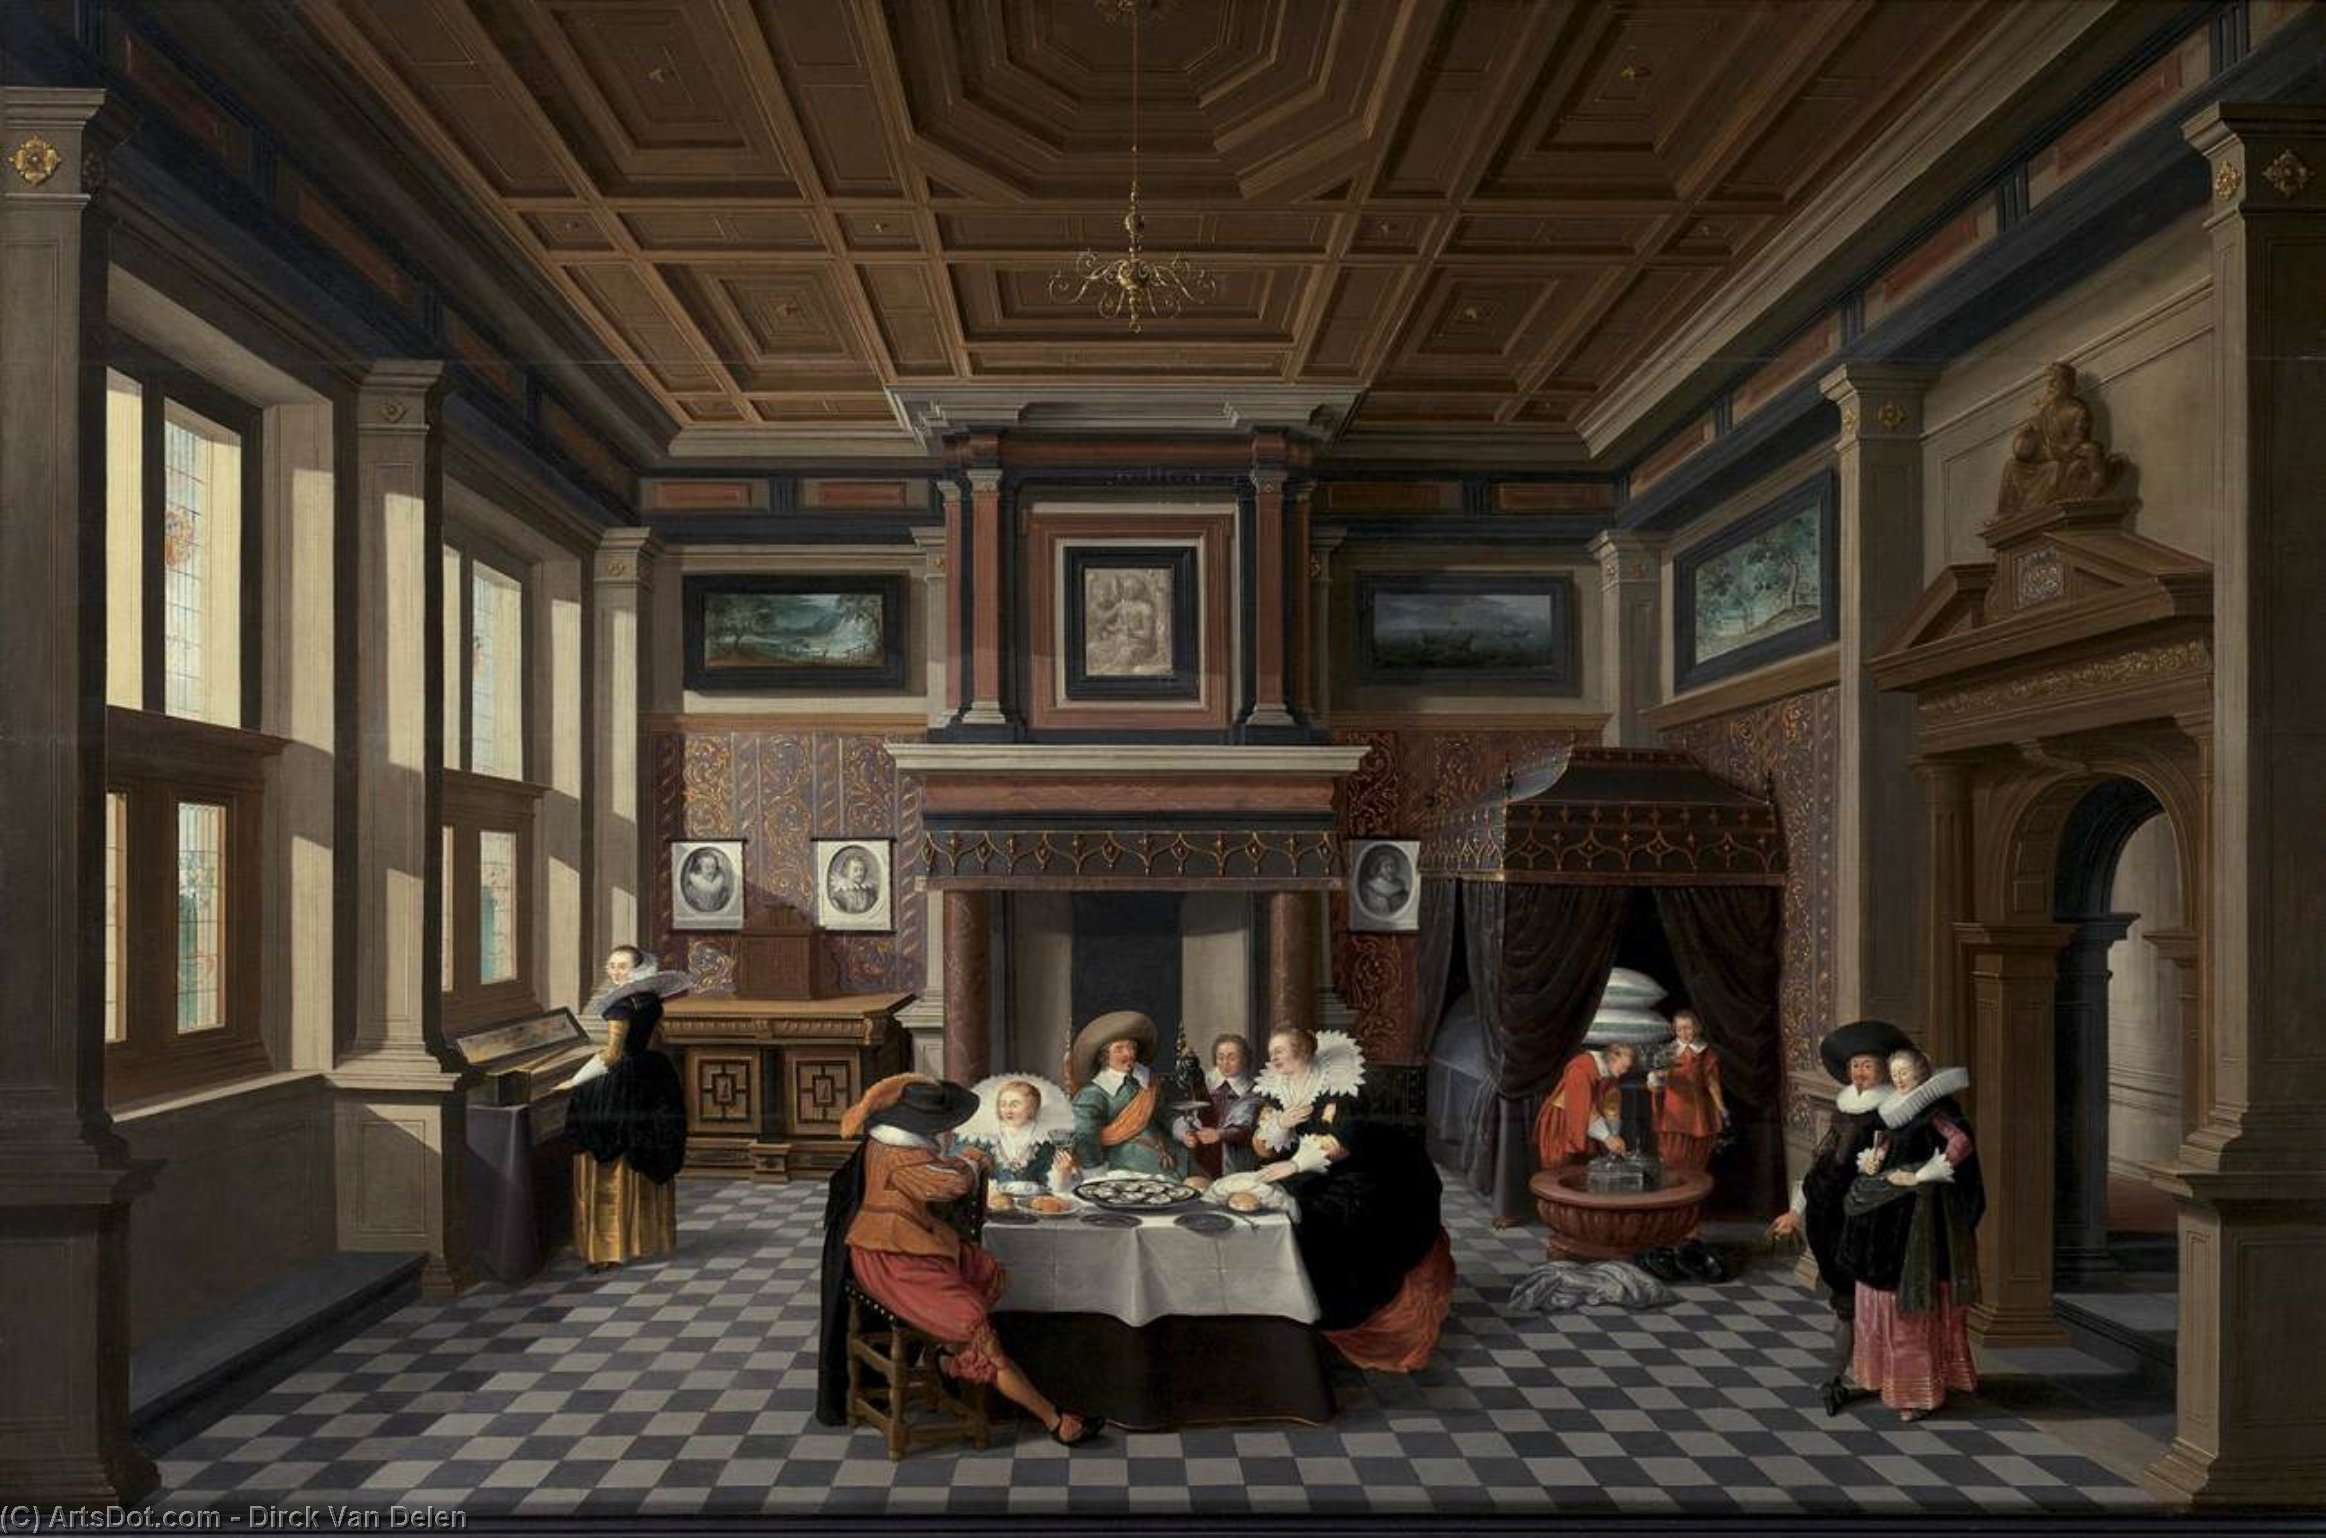 An Interior with Ladies and Gentlemen Dining, Oil On Panel by Dirck Van Delen (1605-1671, Netherlands)